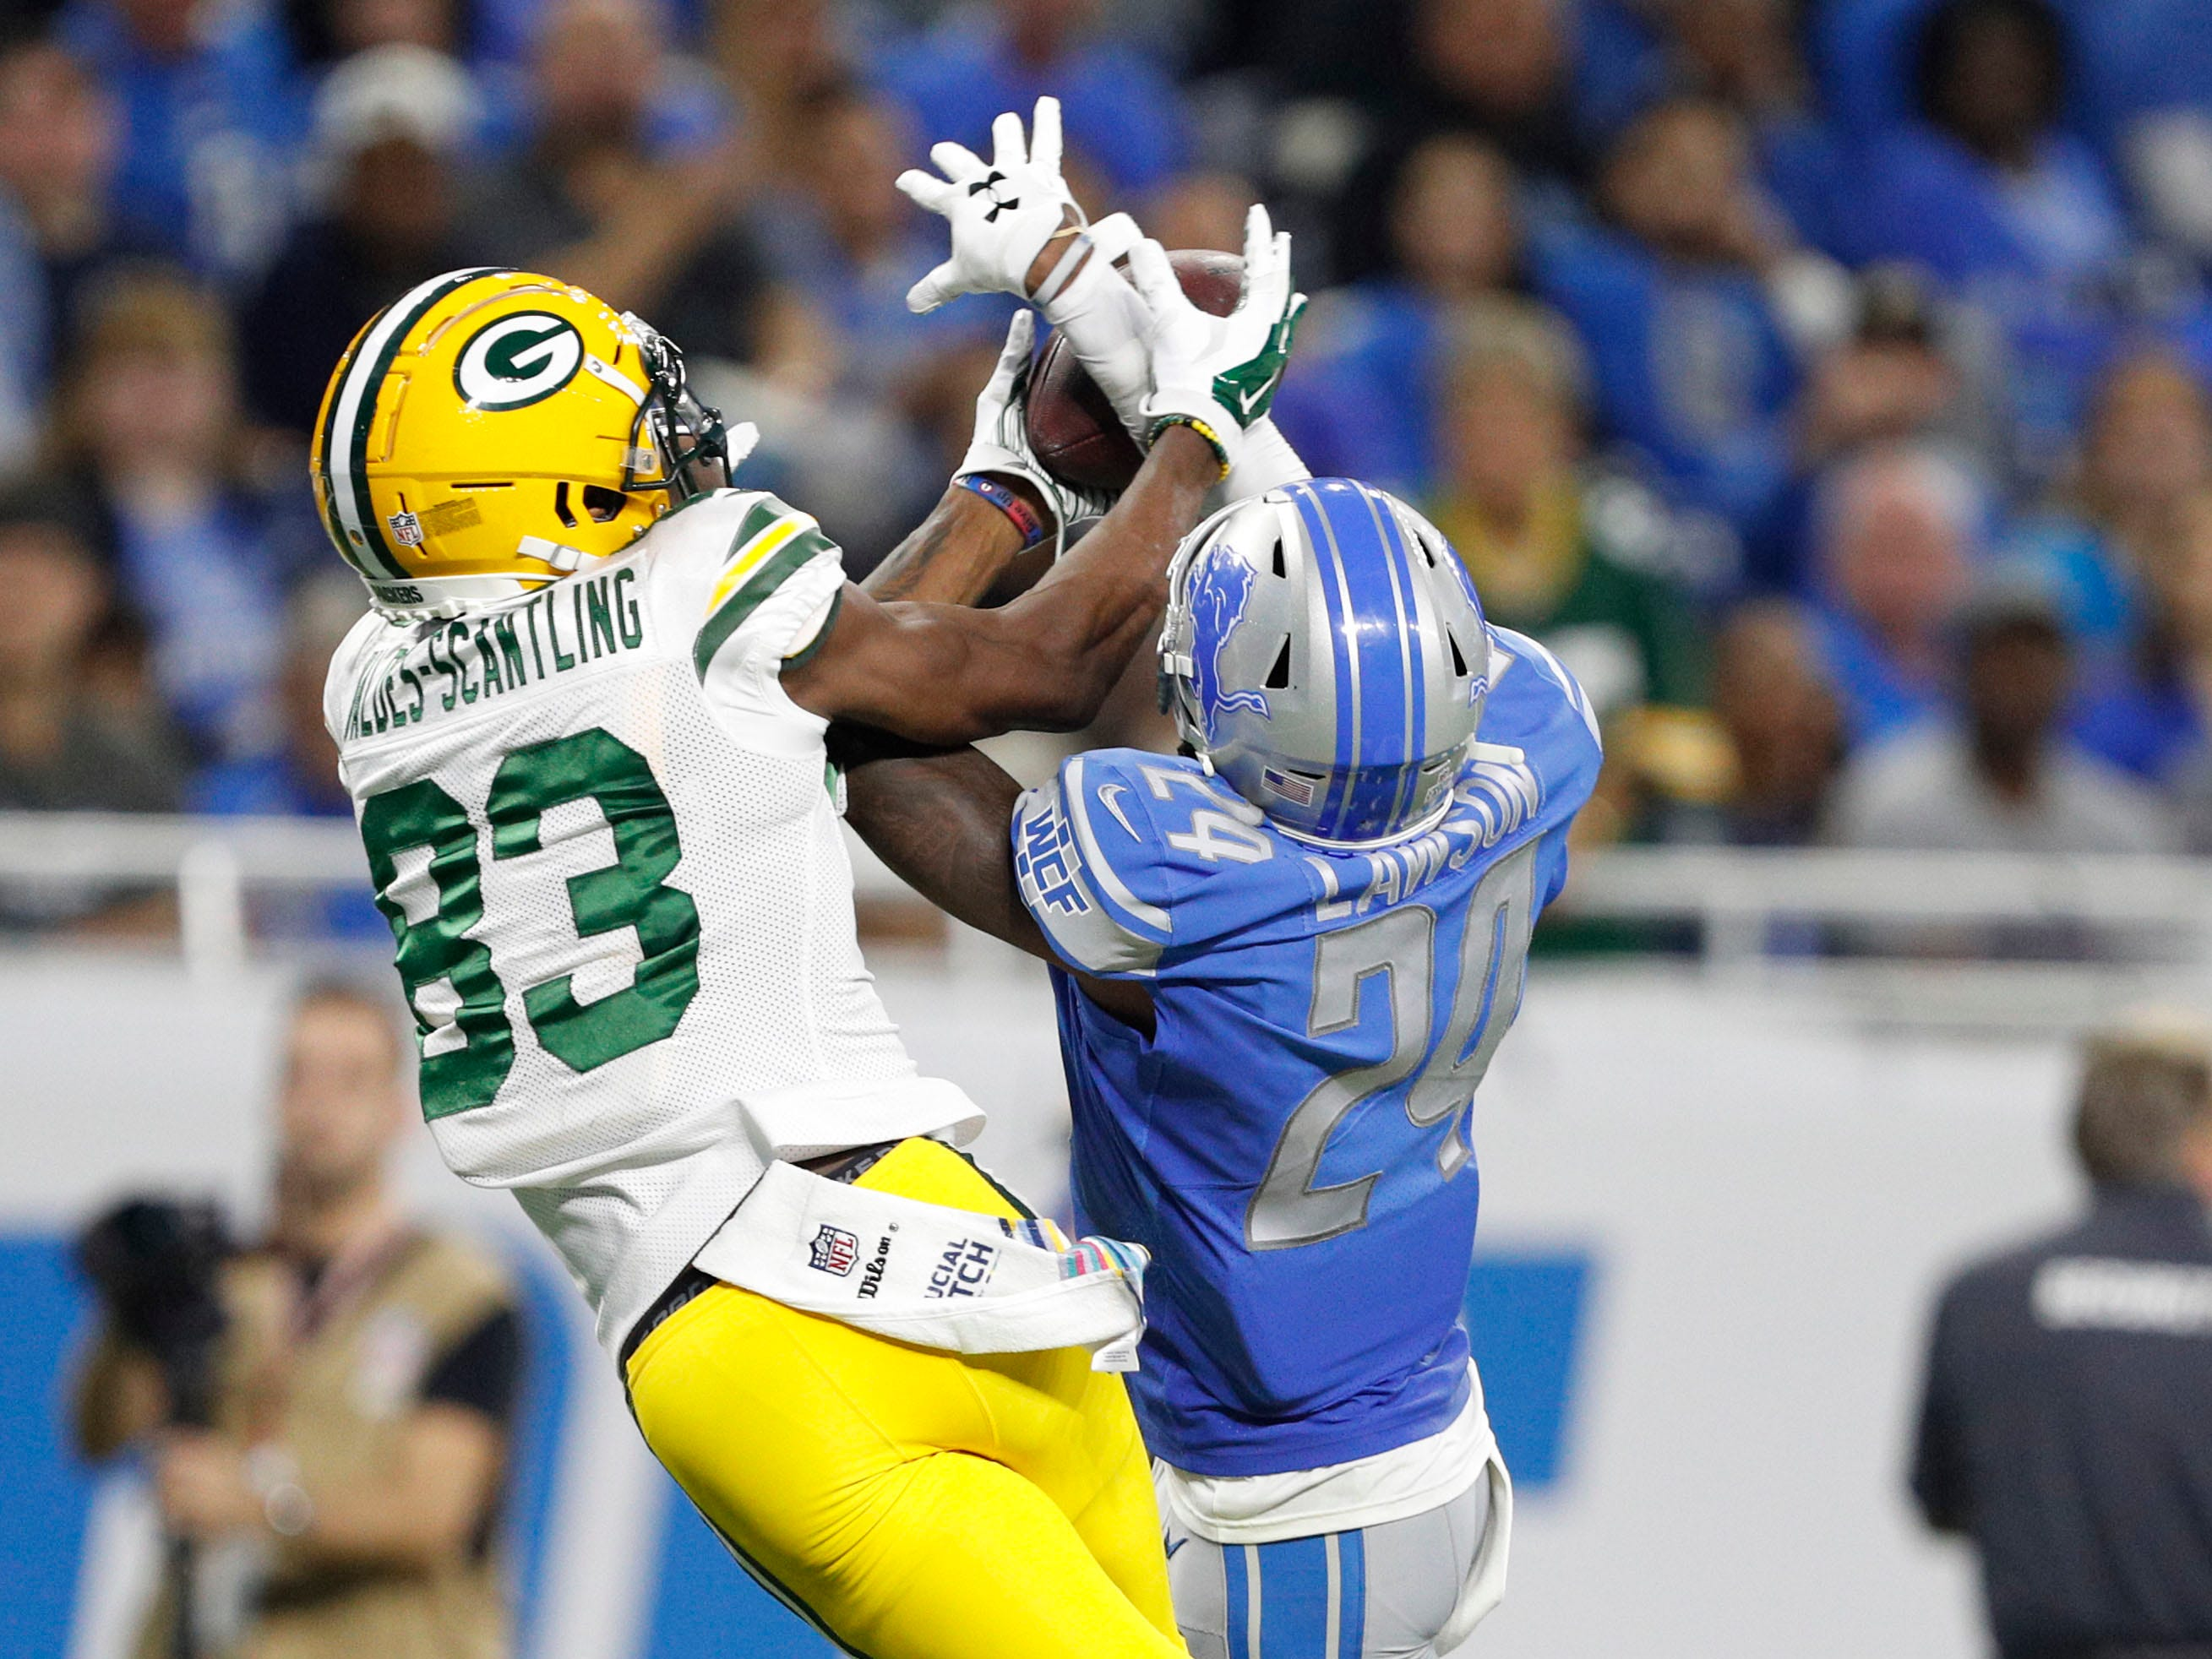 Oct 7, 2018; Detroit, MI, USA; Green Bay Packers wide receiver Marquez Valdes-Scantling (83) unable to make a catch against Detroit Lions cornerback Nevin Lawson (24) during the second quarter at Ford Field.